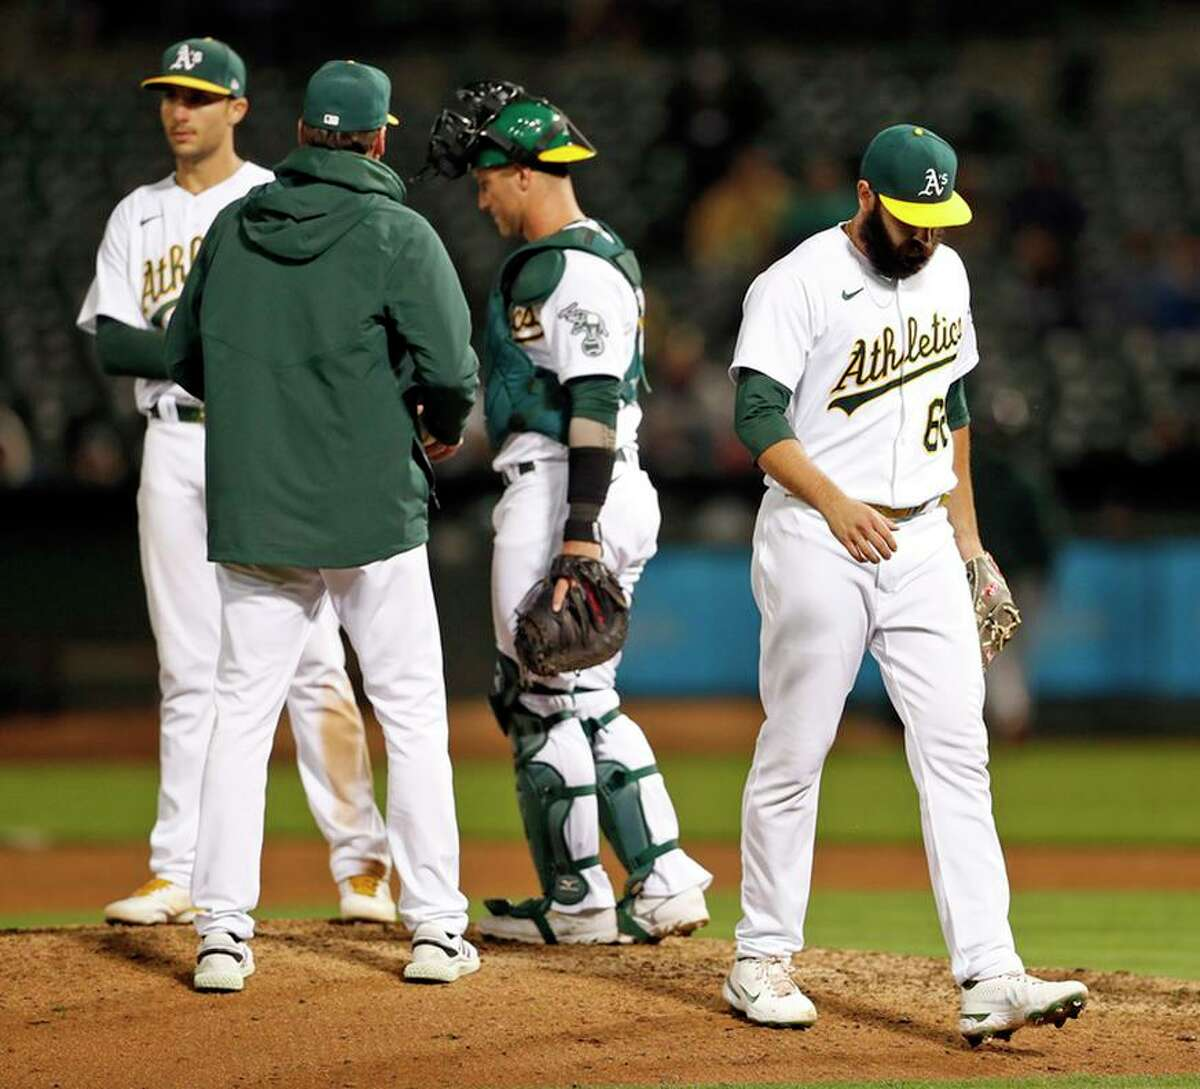 A's reliever Lou Trivino exits the game after the Mariners scored three runs against him in the ninth inning Monday.